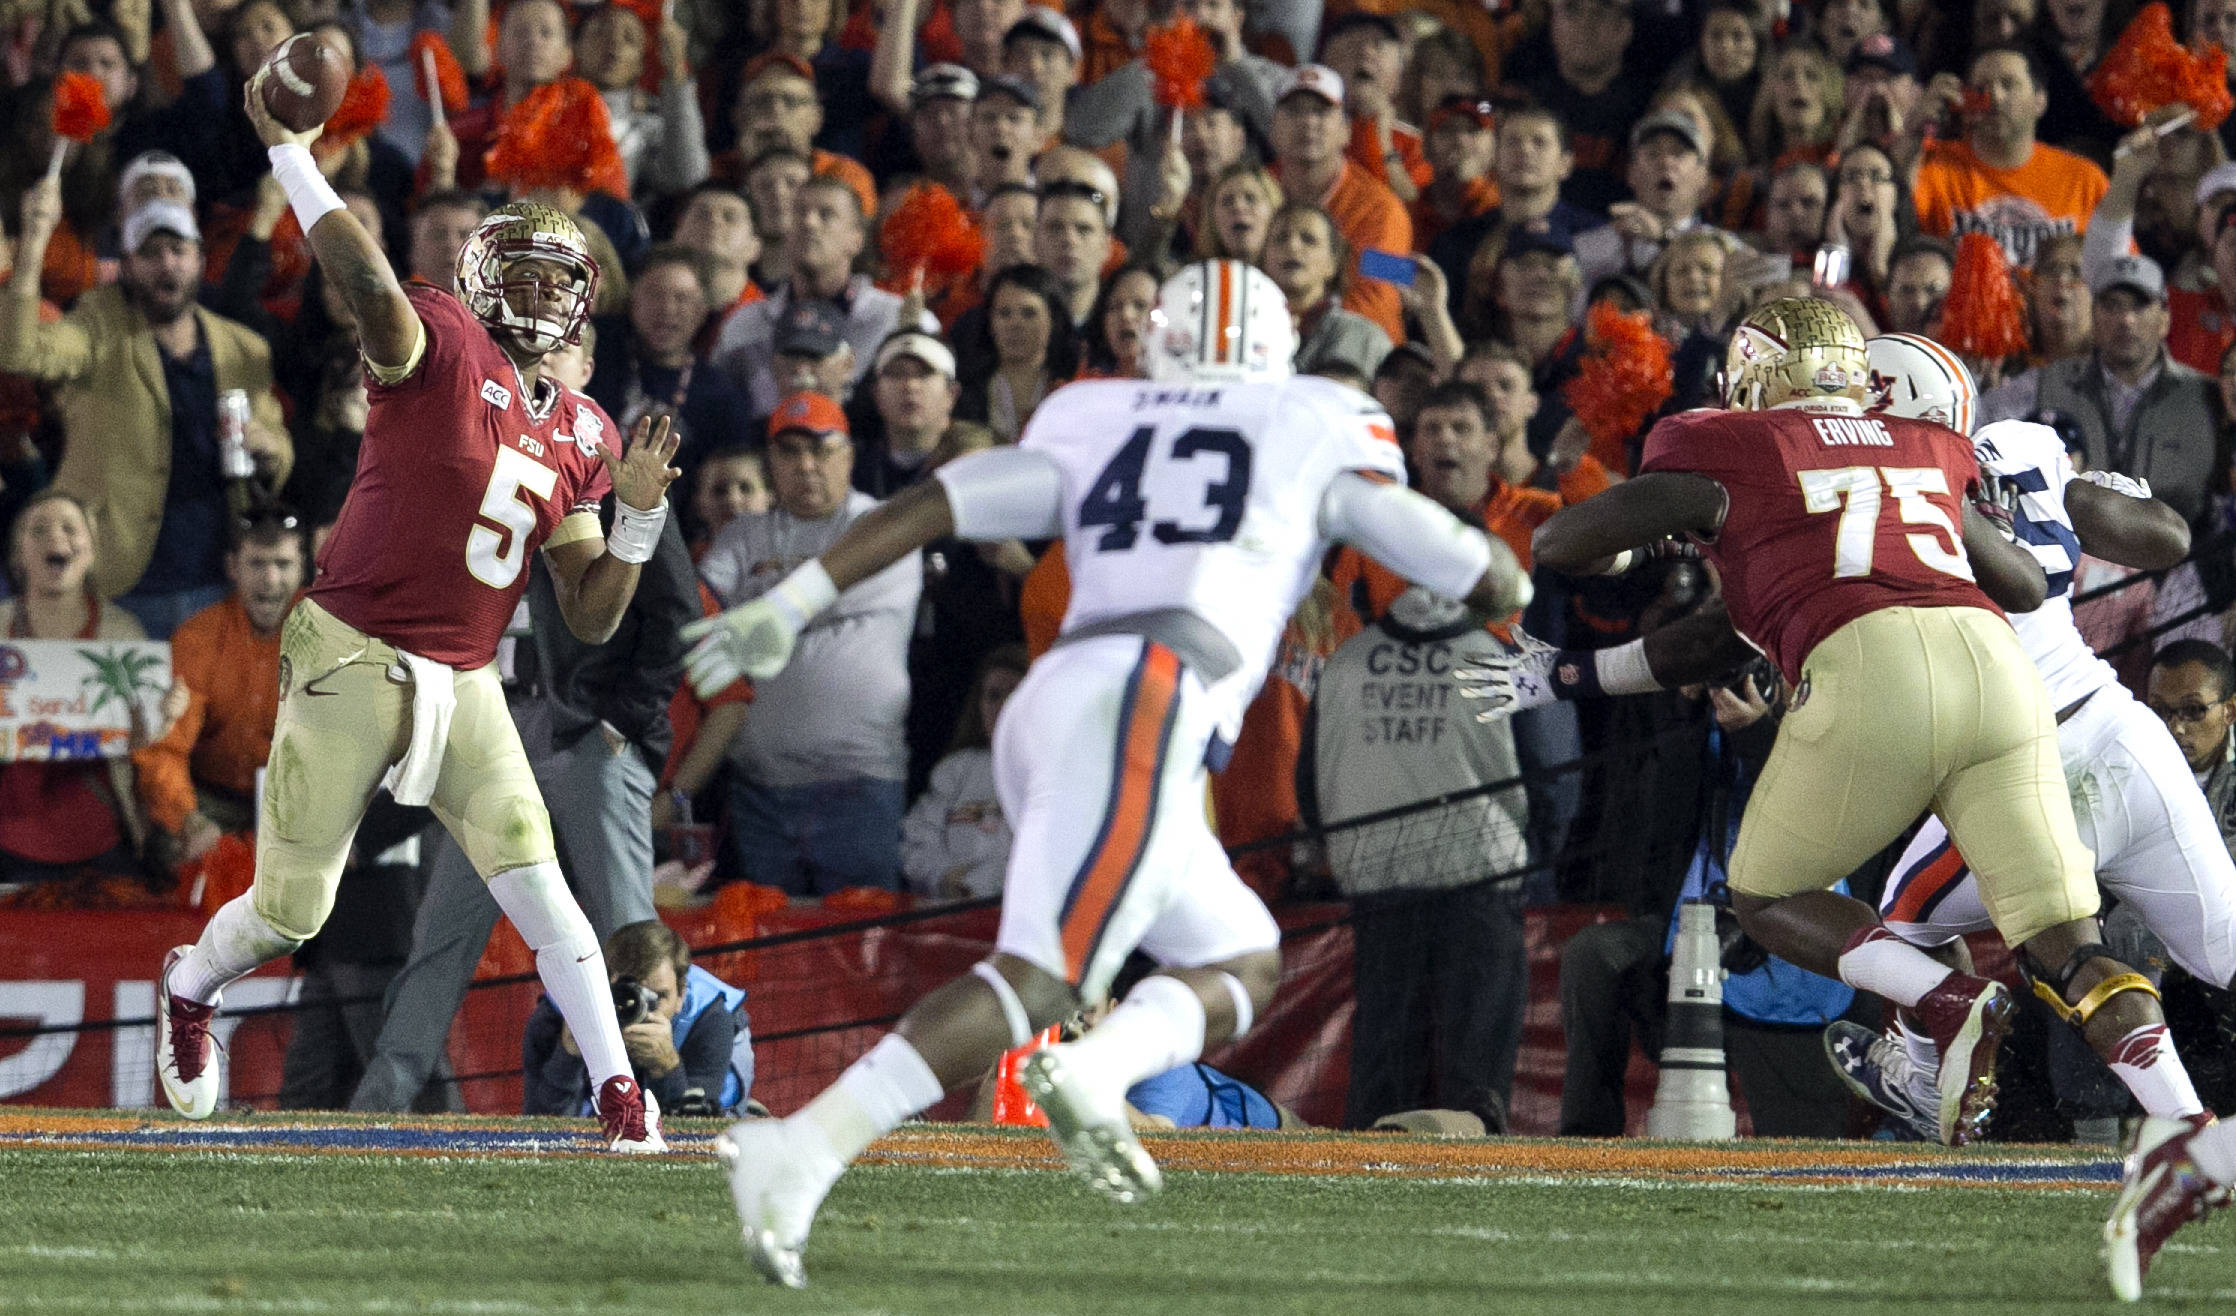 Jameis Winston (5) leading his passing attack, BCS Championship, FSU vs Auburn, Rose Bowl, Pasadena, CA,  1-06-14,  (Photo by Steve Musco)